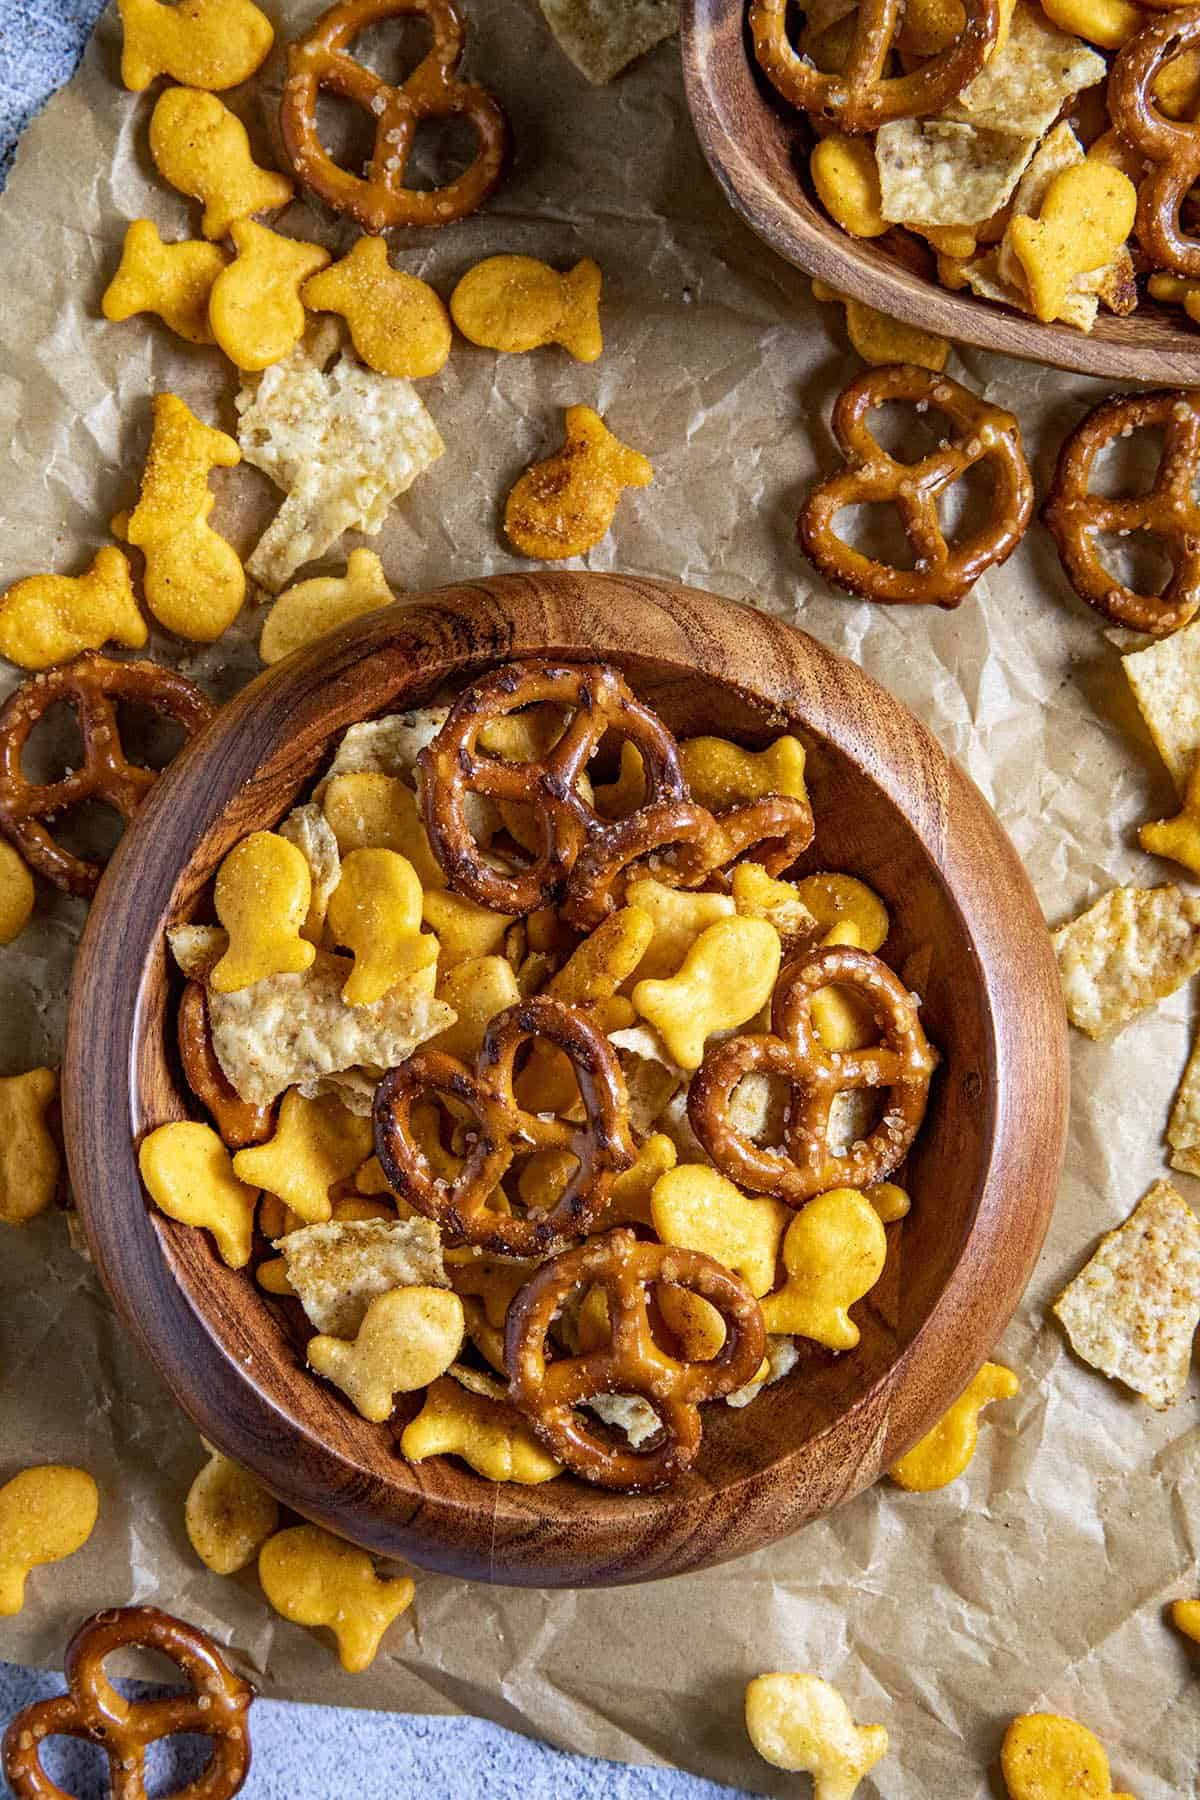 Homemade Spicy Snack Mix in a bowl